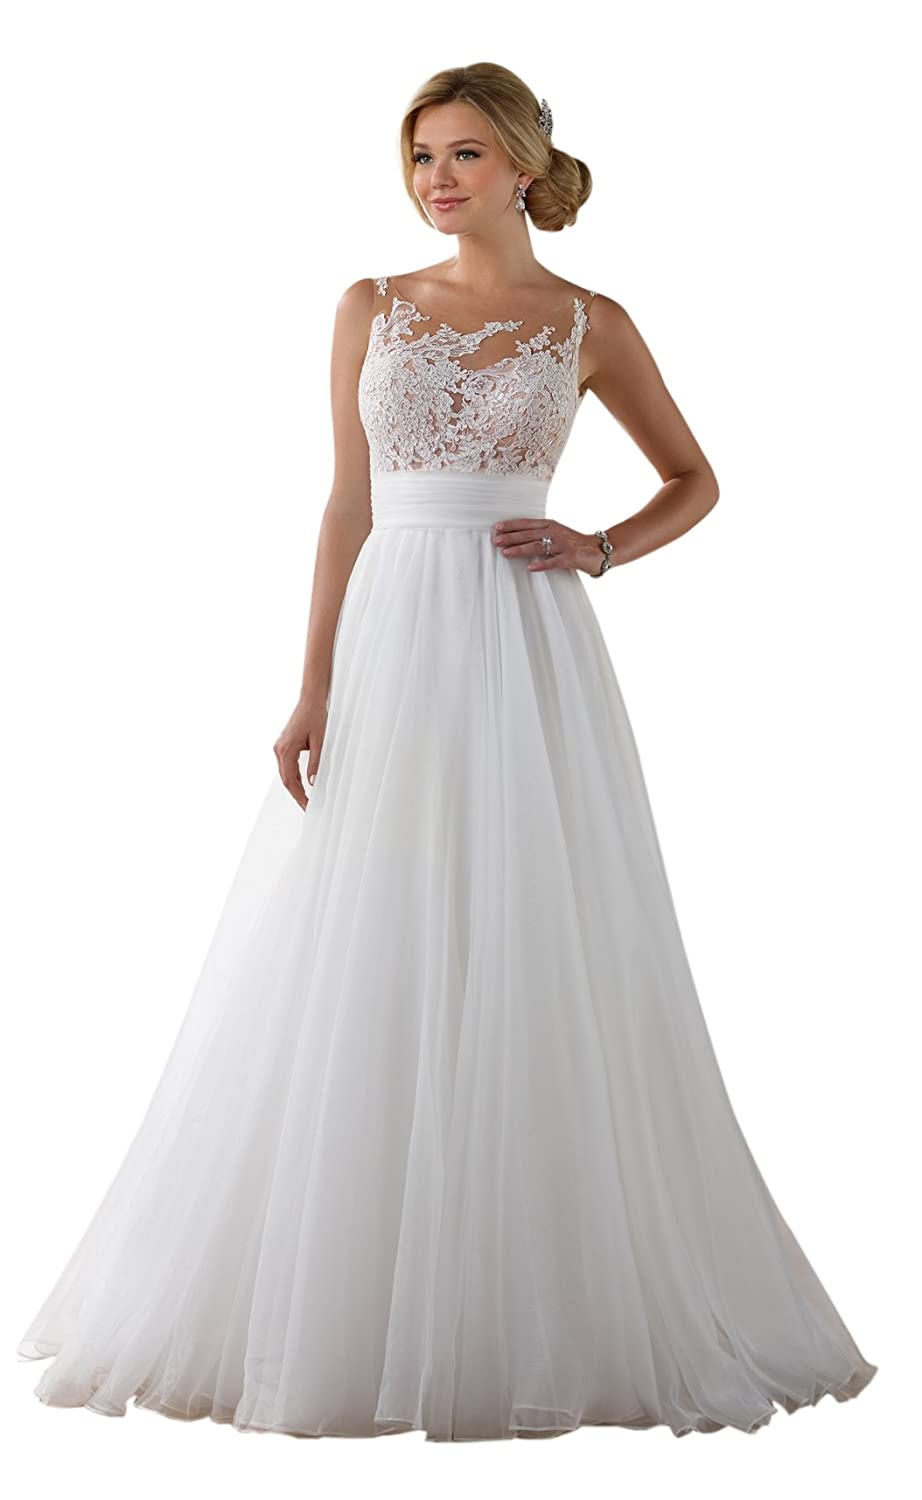 63adb5bd7e0 A-Line Chiffon Tulle Appliques Scoop Neckline Button Back Women s Simple  Beach Wedding Dresses.